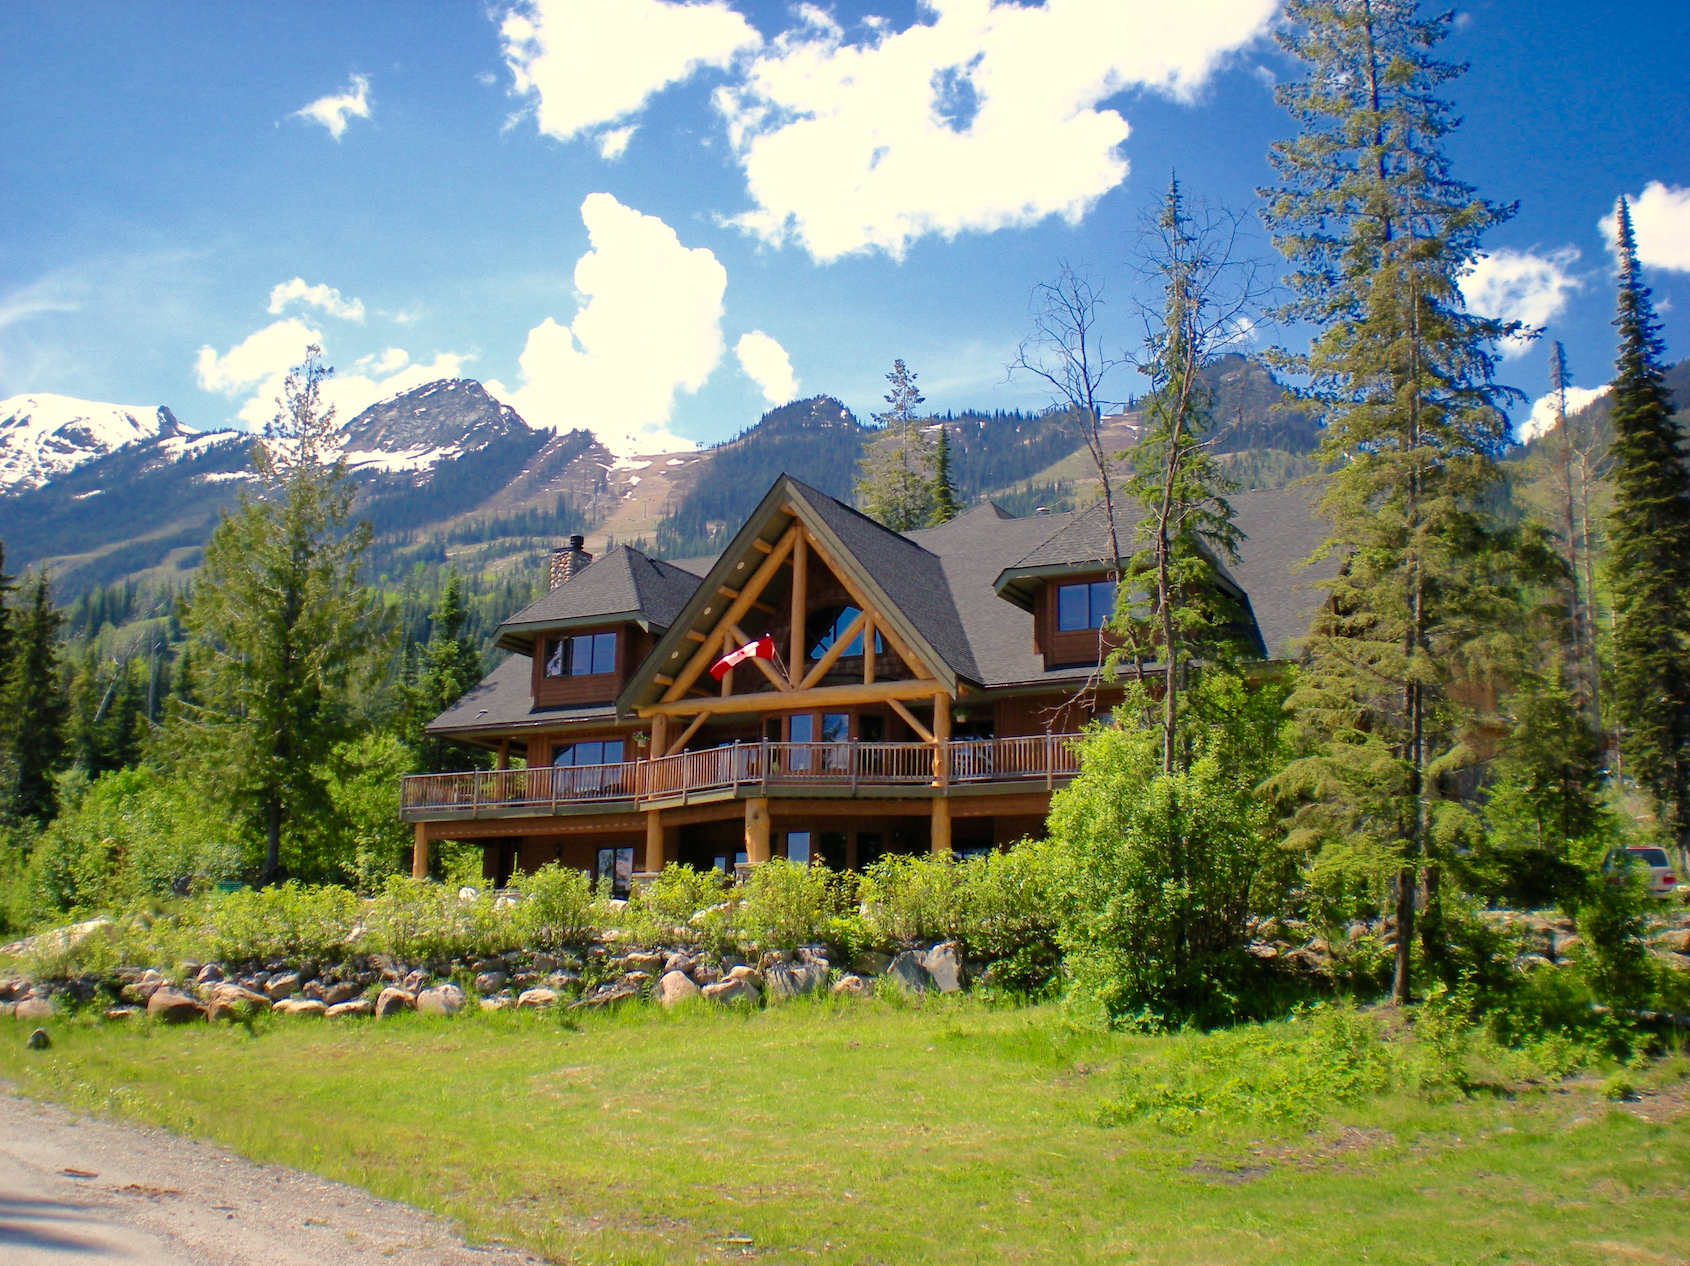 1-of-a-kind Golden,BC Canada Lodge